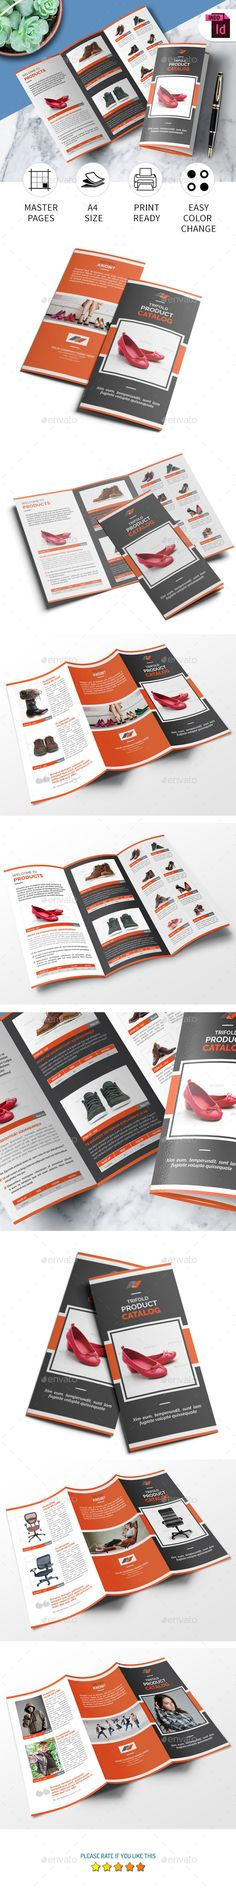 Trifold Product Catalog Template — InDesign INDD #tri-fold a4 catalog #indesign tri-fold catalog template • Available here → https://graphicriver.net/item/trifold-product-catalog-template/20705875?ref=pxcr